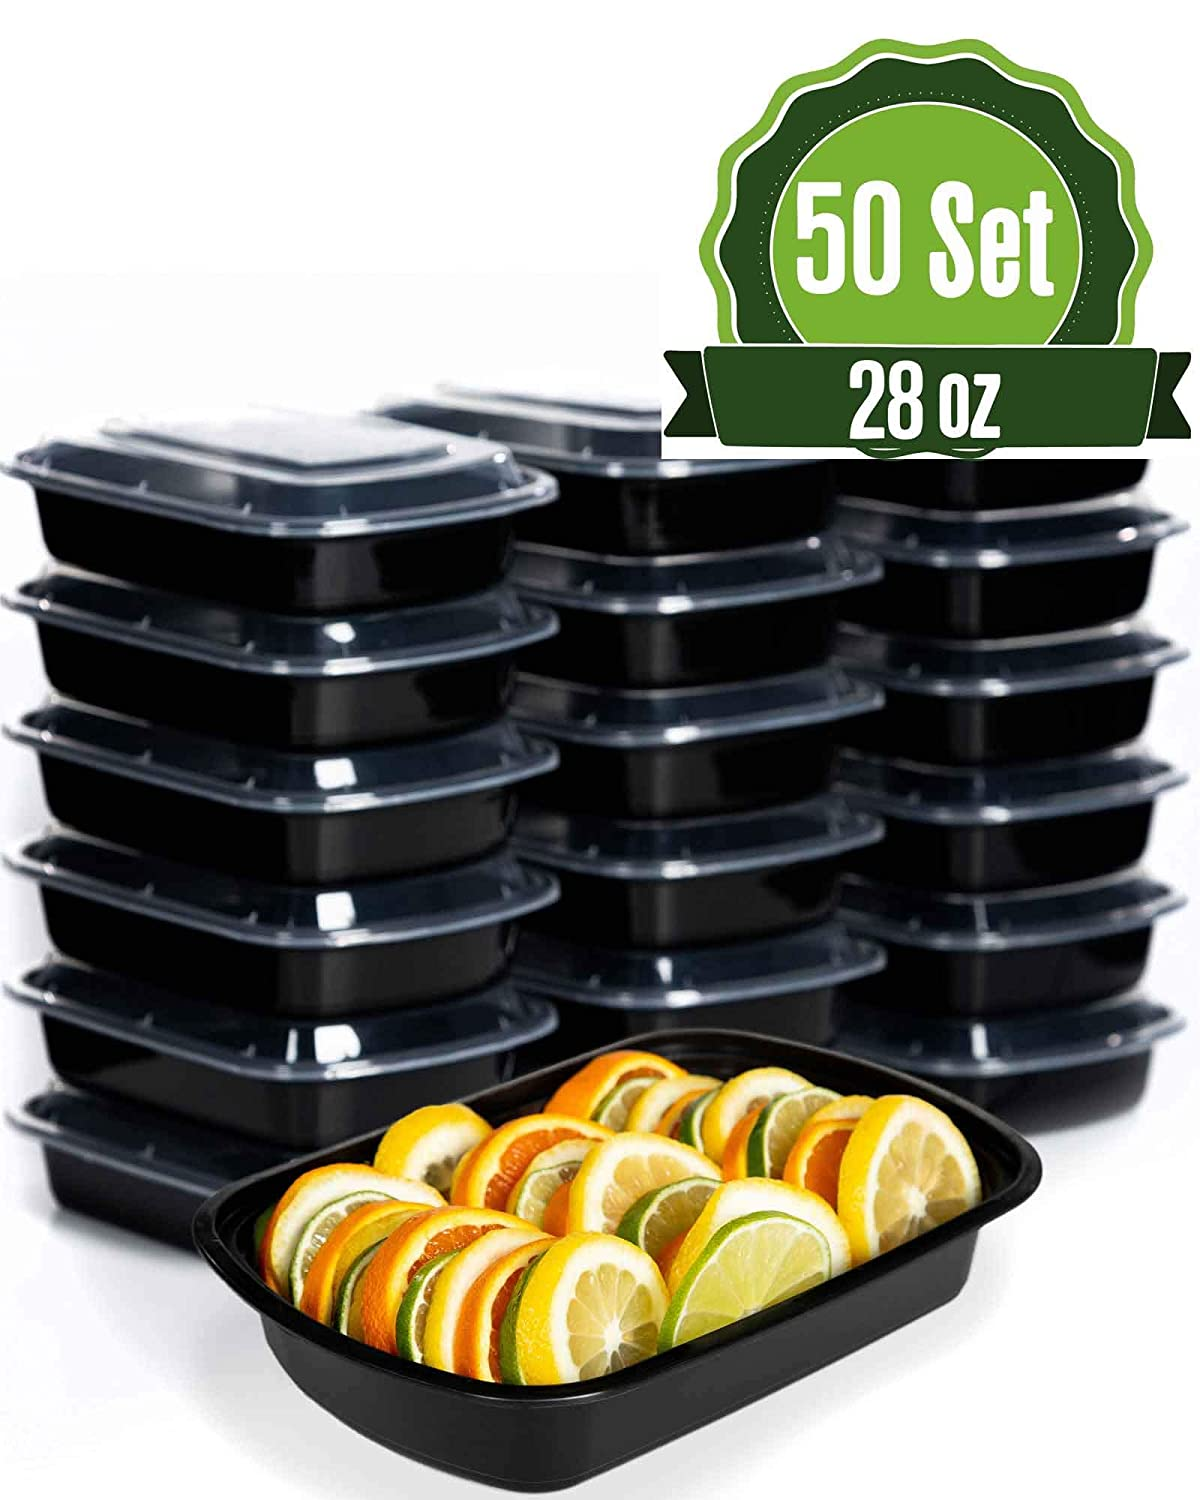 Safeware Meal Prep 1 Compartment Containers with Lids-28oz [50 Set] Ideal-Lunch Containers, Food Prep Containers, Food Storage Bento Box, Portion Control | Stackable | Microwave | Dishwasher | Freezer